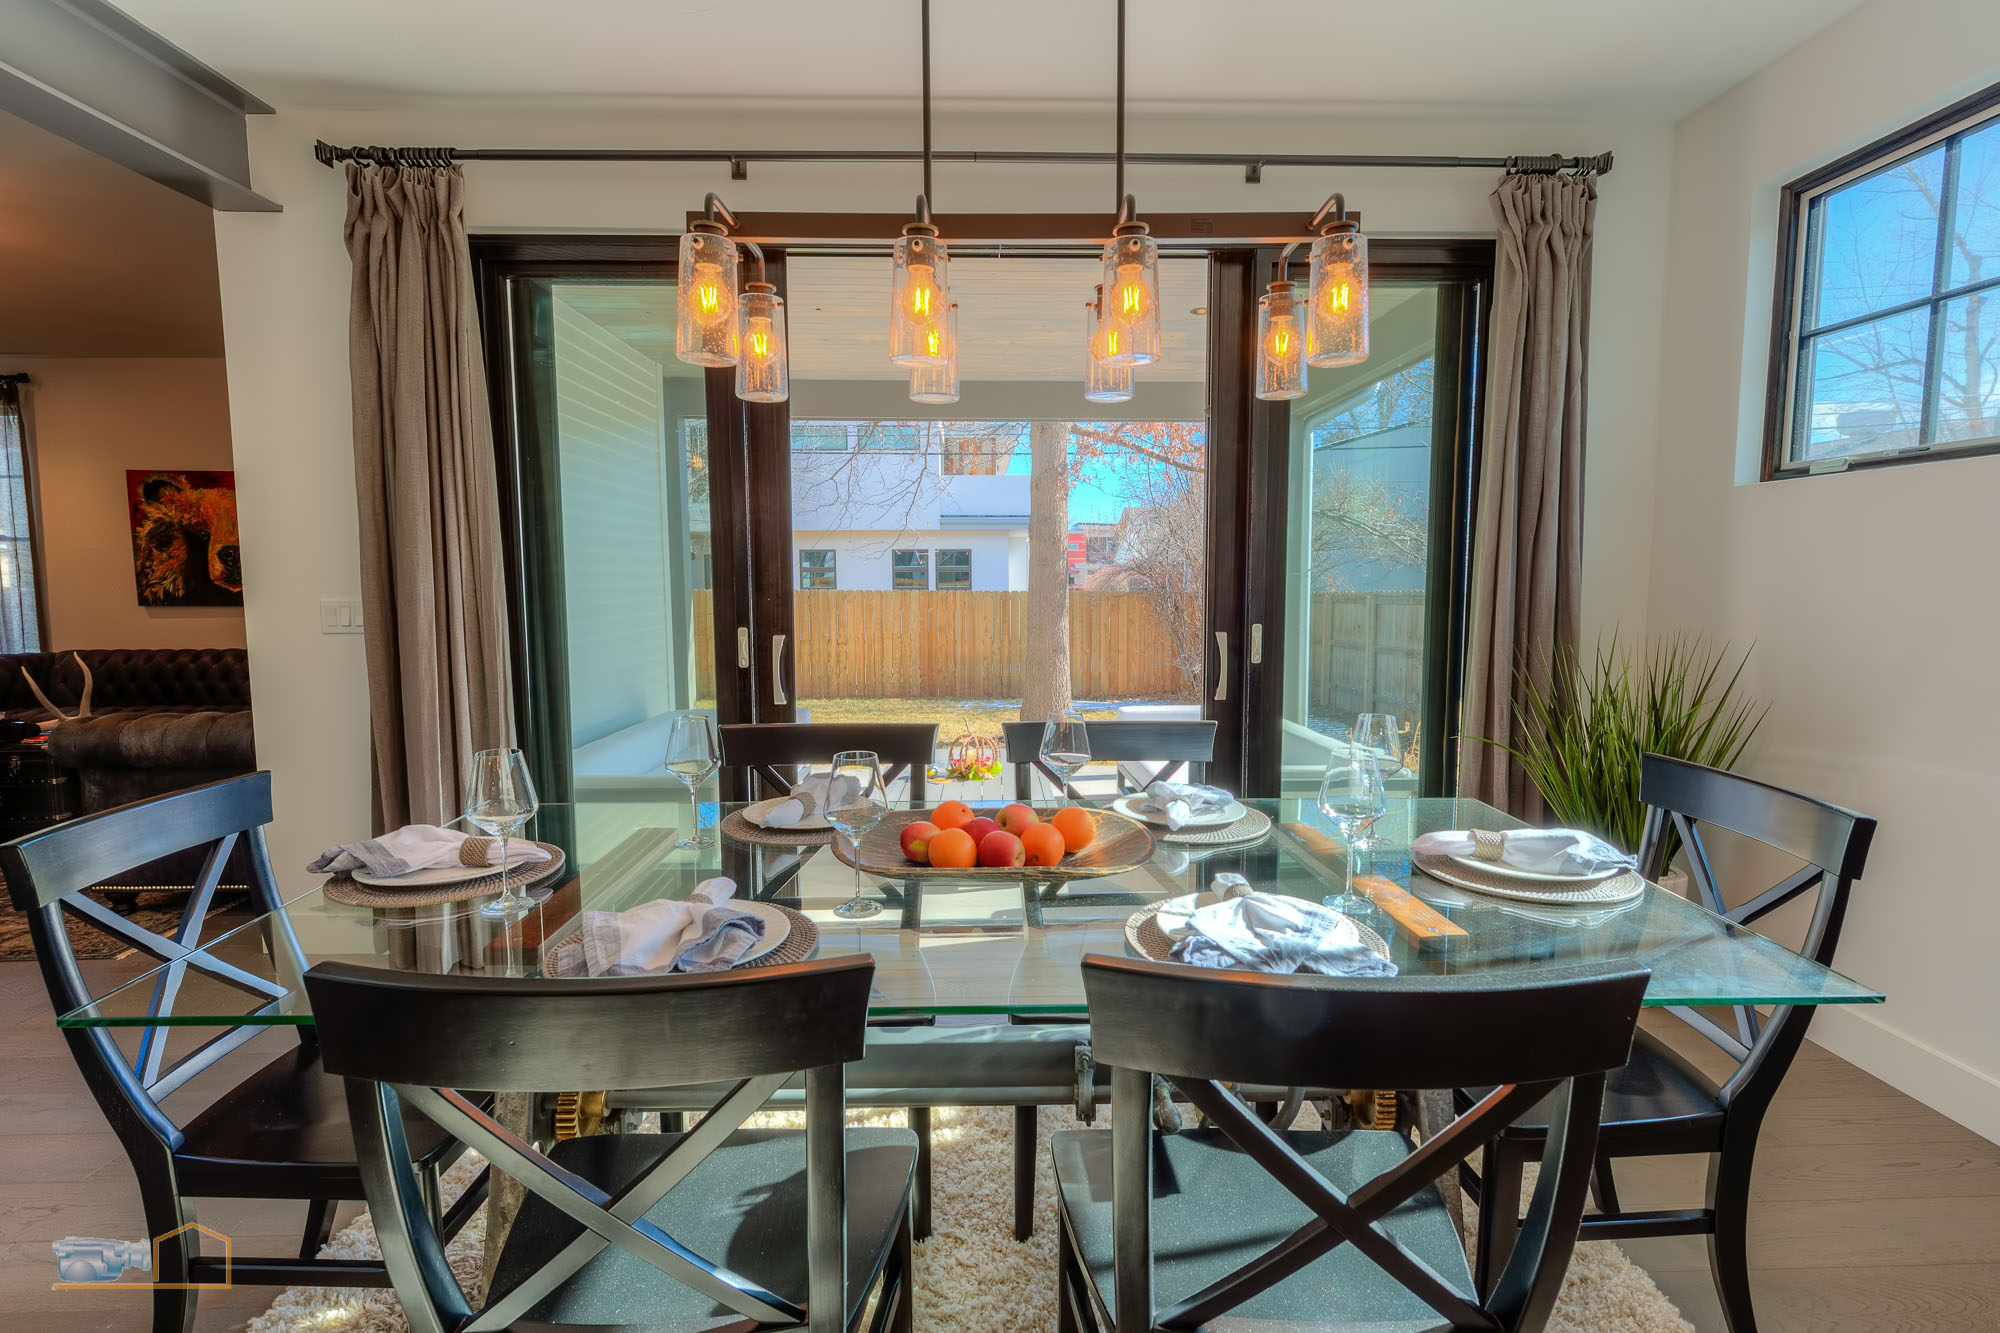 3060_Dining_and_Exterior_Patio_E_HiRes_Web